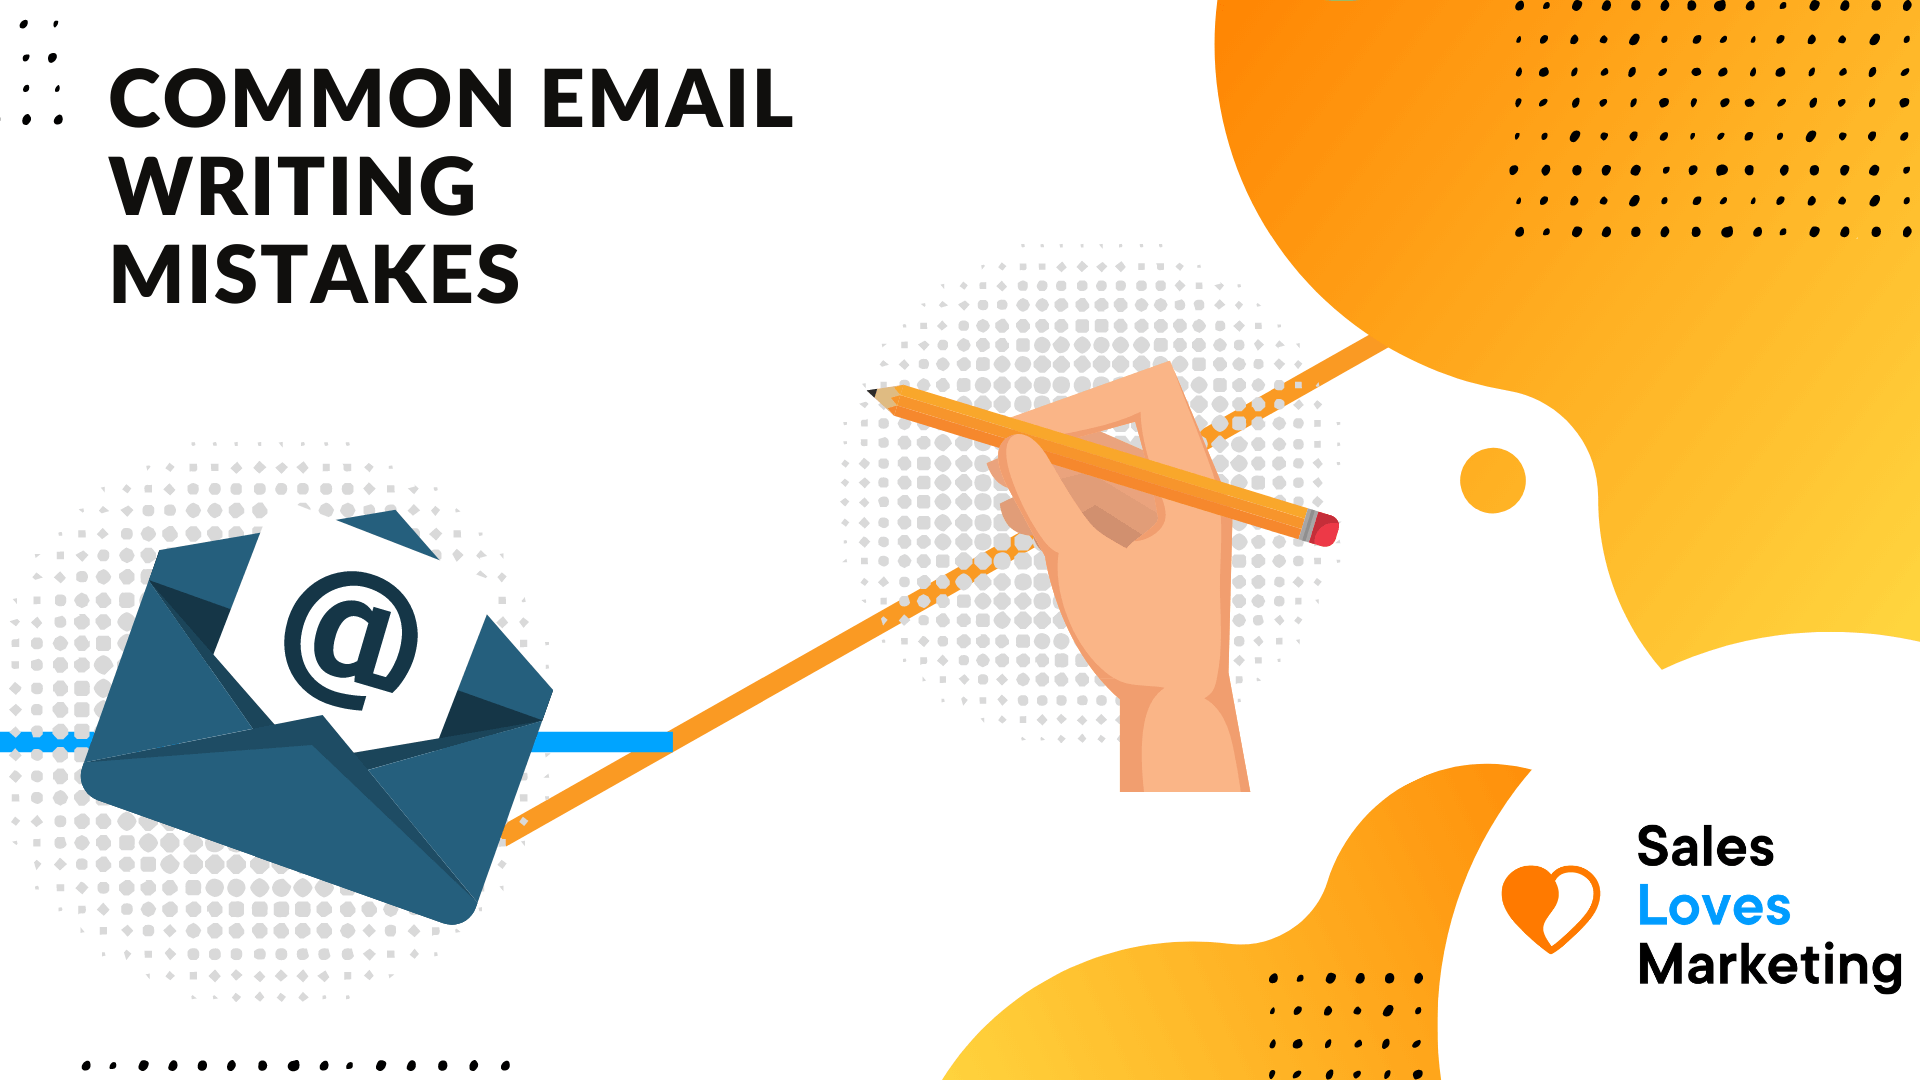 what are the most common writing mistakes in emails